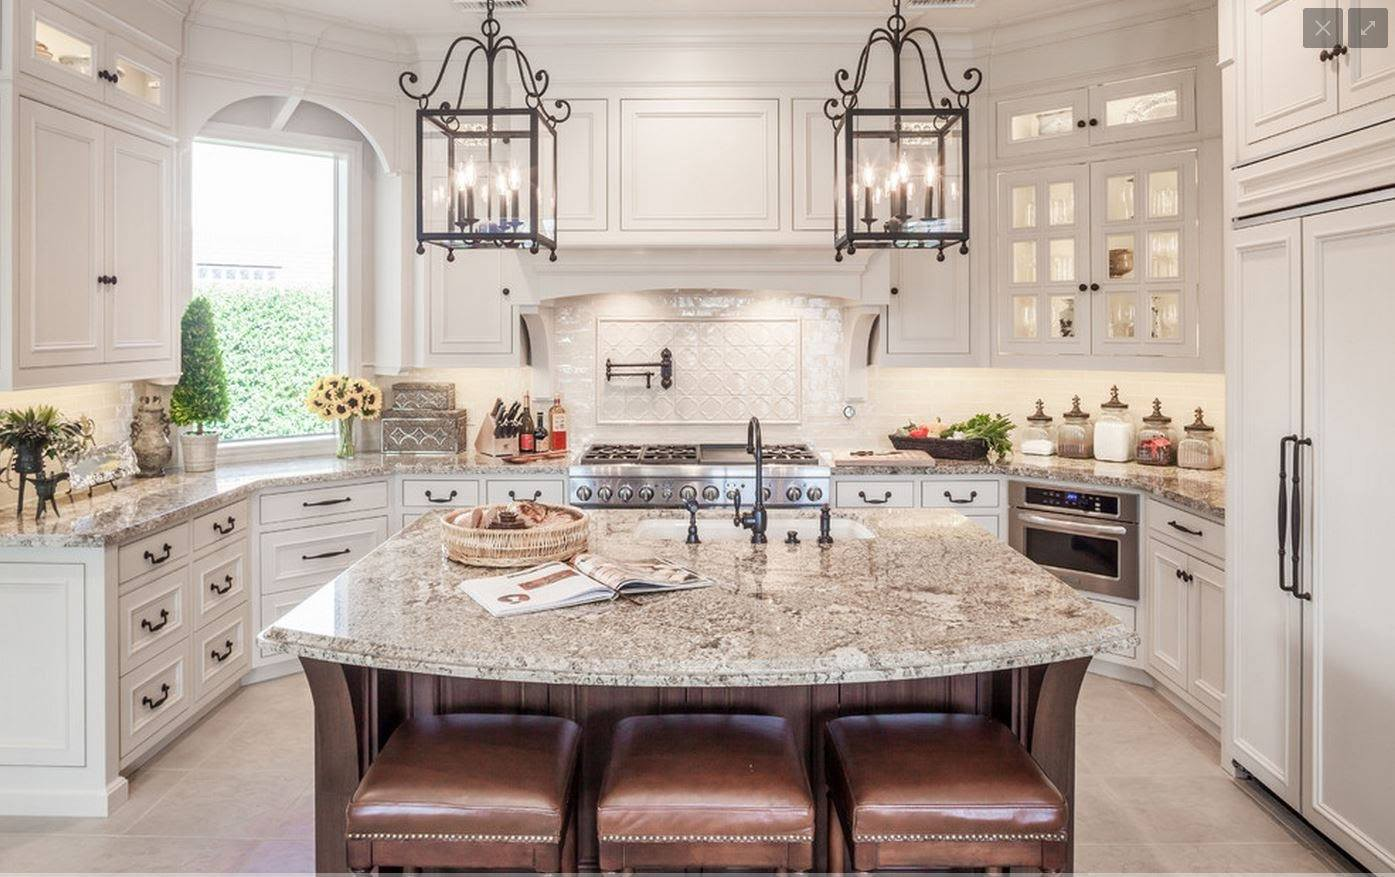 Uncategorized Design Your Dream Kitchen the diy guide to getting your dream kitchen maria killam medium